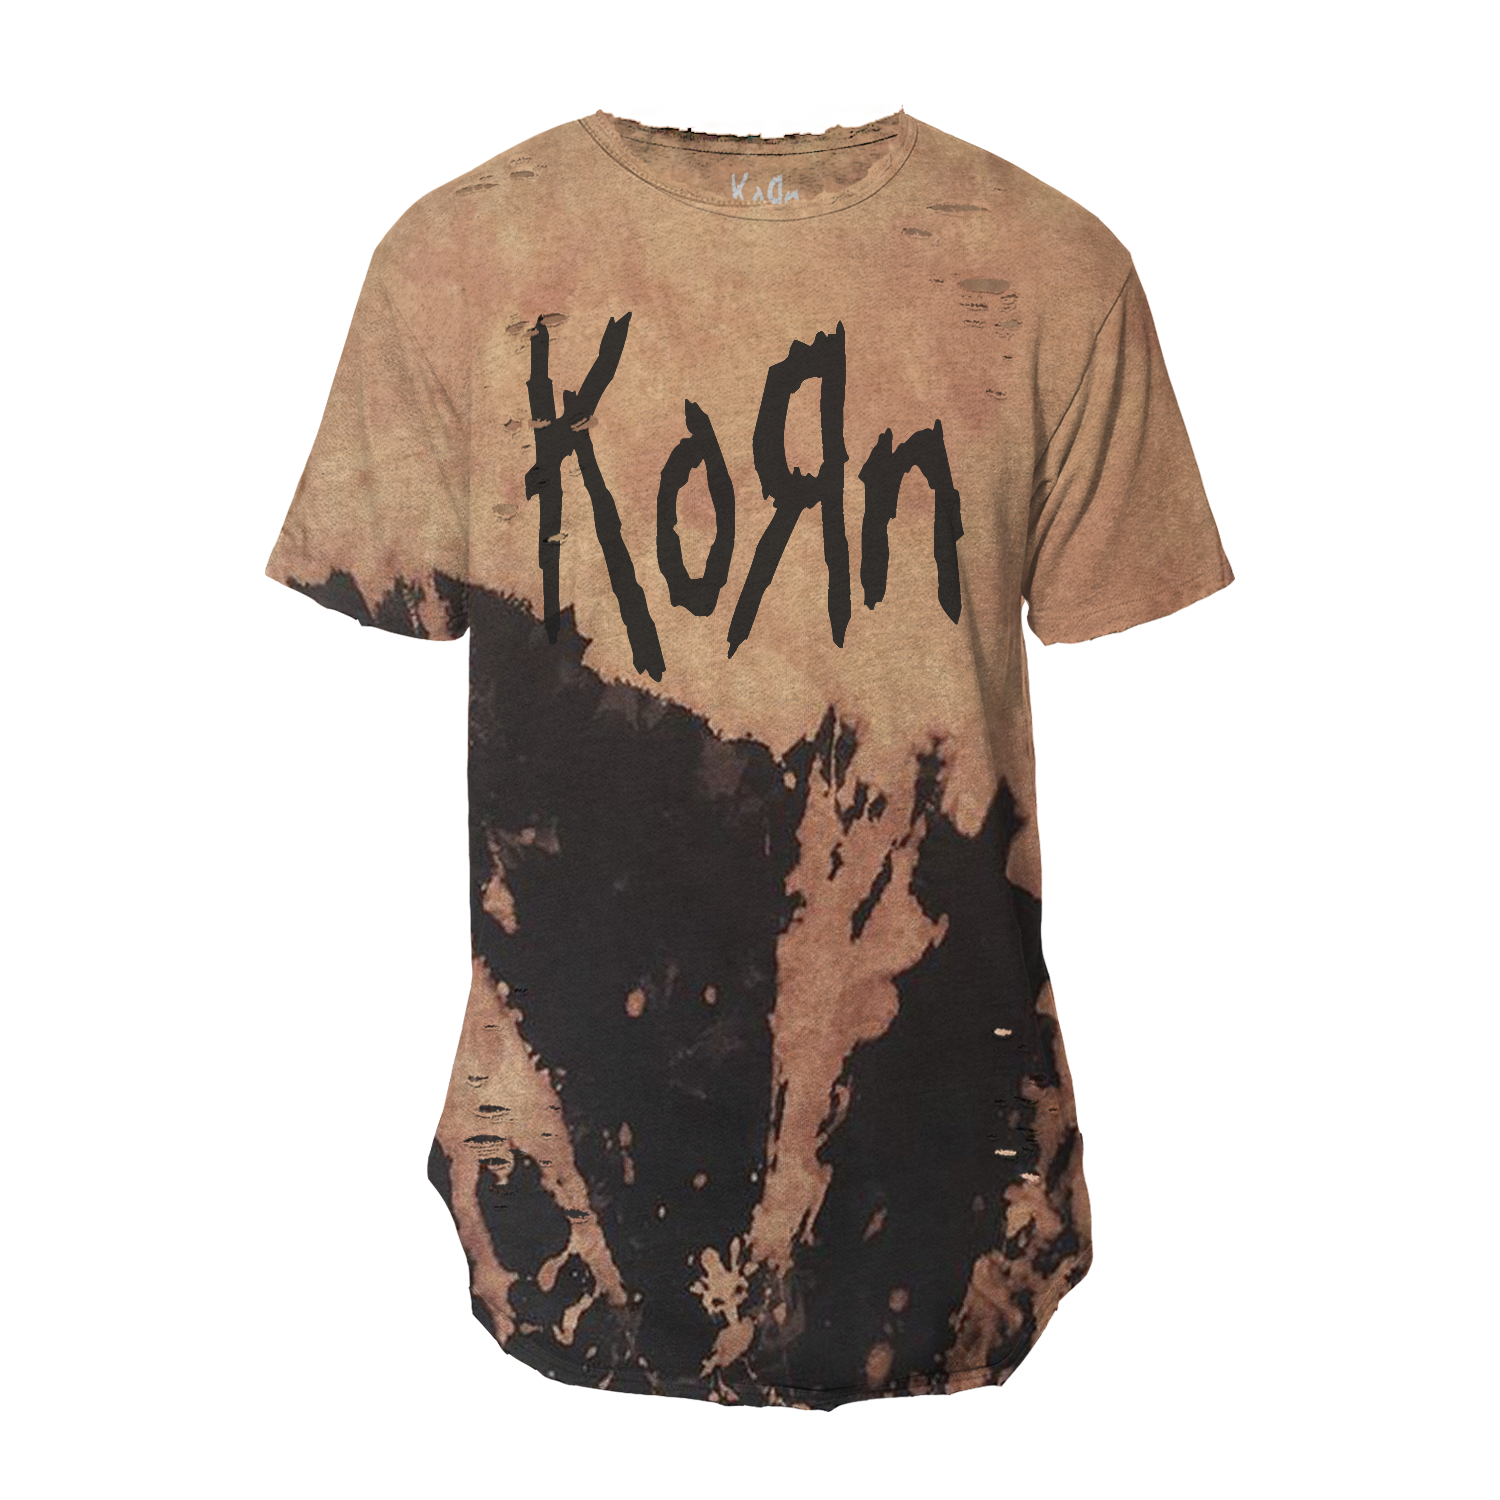 Korn Official Limited Edition 'Freak' Long Line Tee, Exclusive to kornlimited.com, Official Limited Edition, Official Merch, Official Store, Official Shop, Hoodie, Official Merchandise, T-shirt, Hoodie, Jacket, Shirts, Blind Jersey, Shirt, killermerch.com, Killer Merch